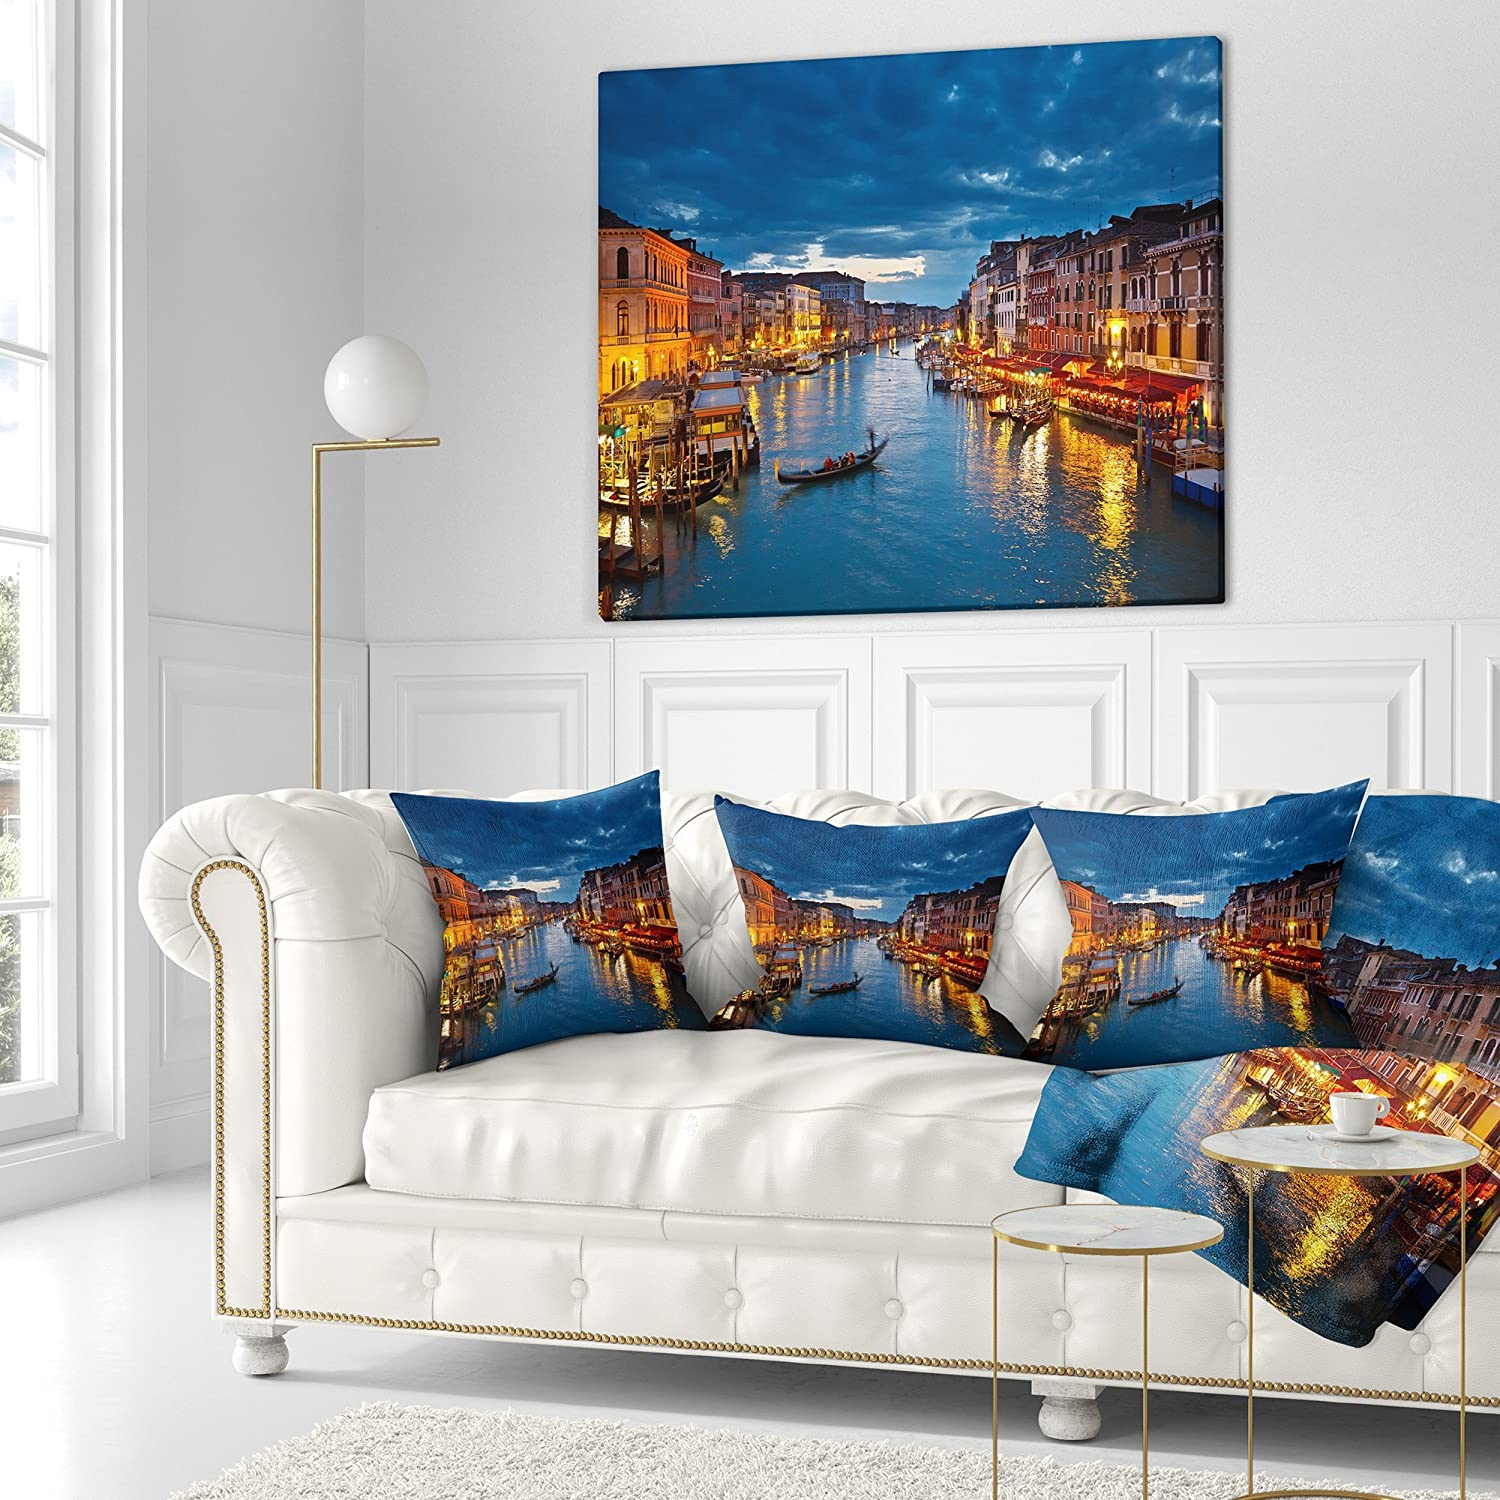 Designart CU7685-18-18 Grand Canal at Night Venice Cityscape Photo Cushion Cover for Living Room Sofa Throw Pillow 18 in in x 18 in Insert Printed On Both Side